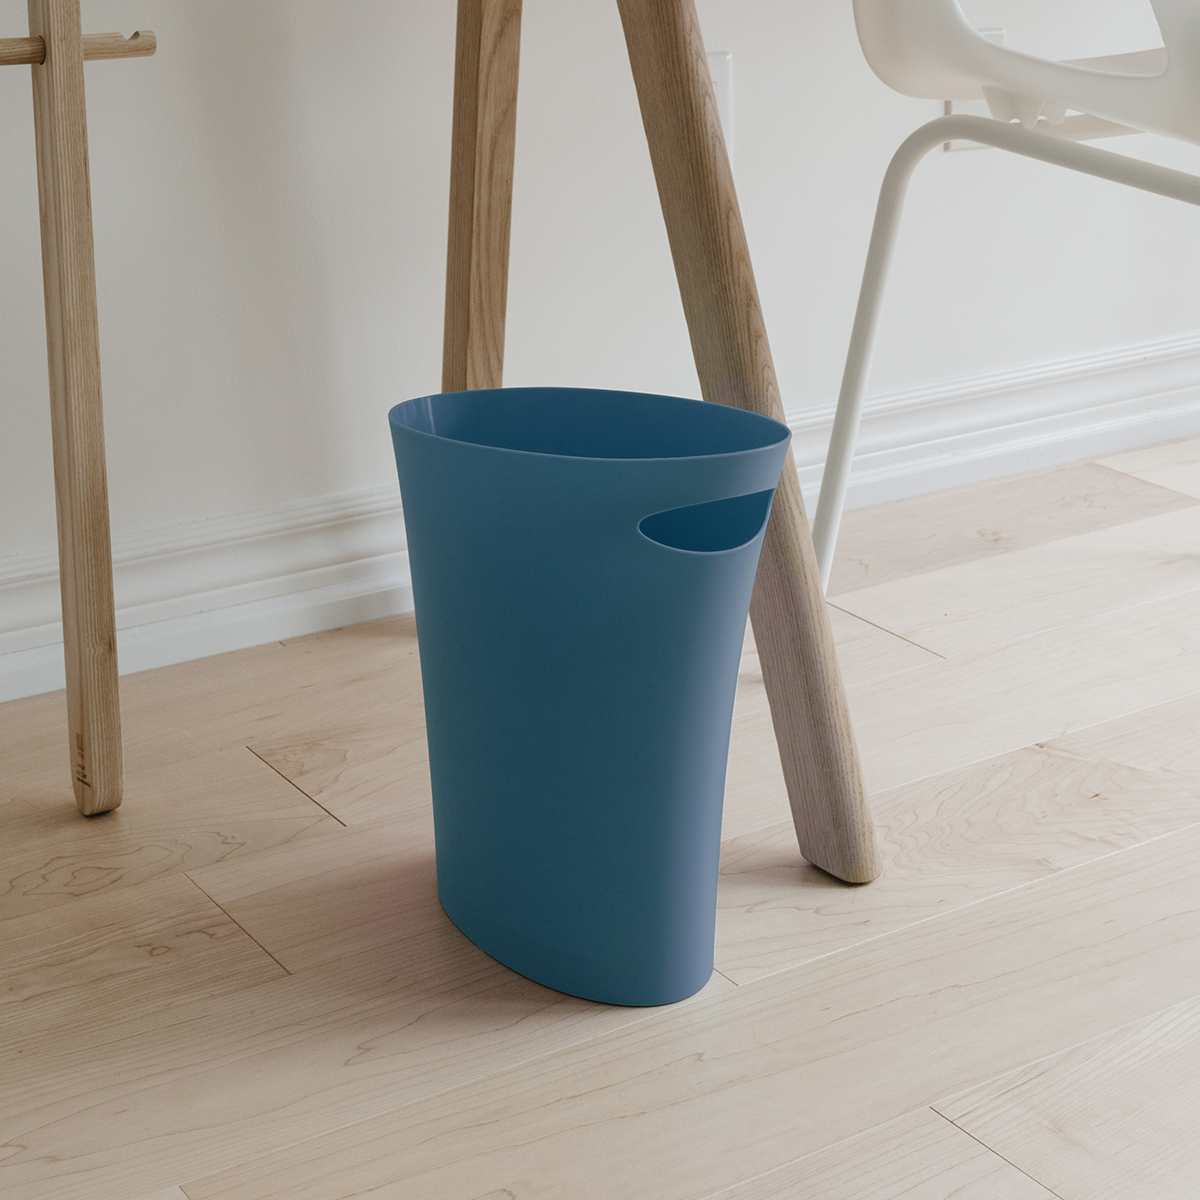 Umbra Teal Skinny Trash Can